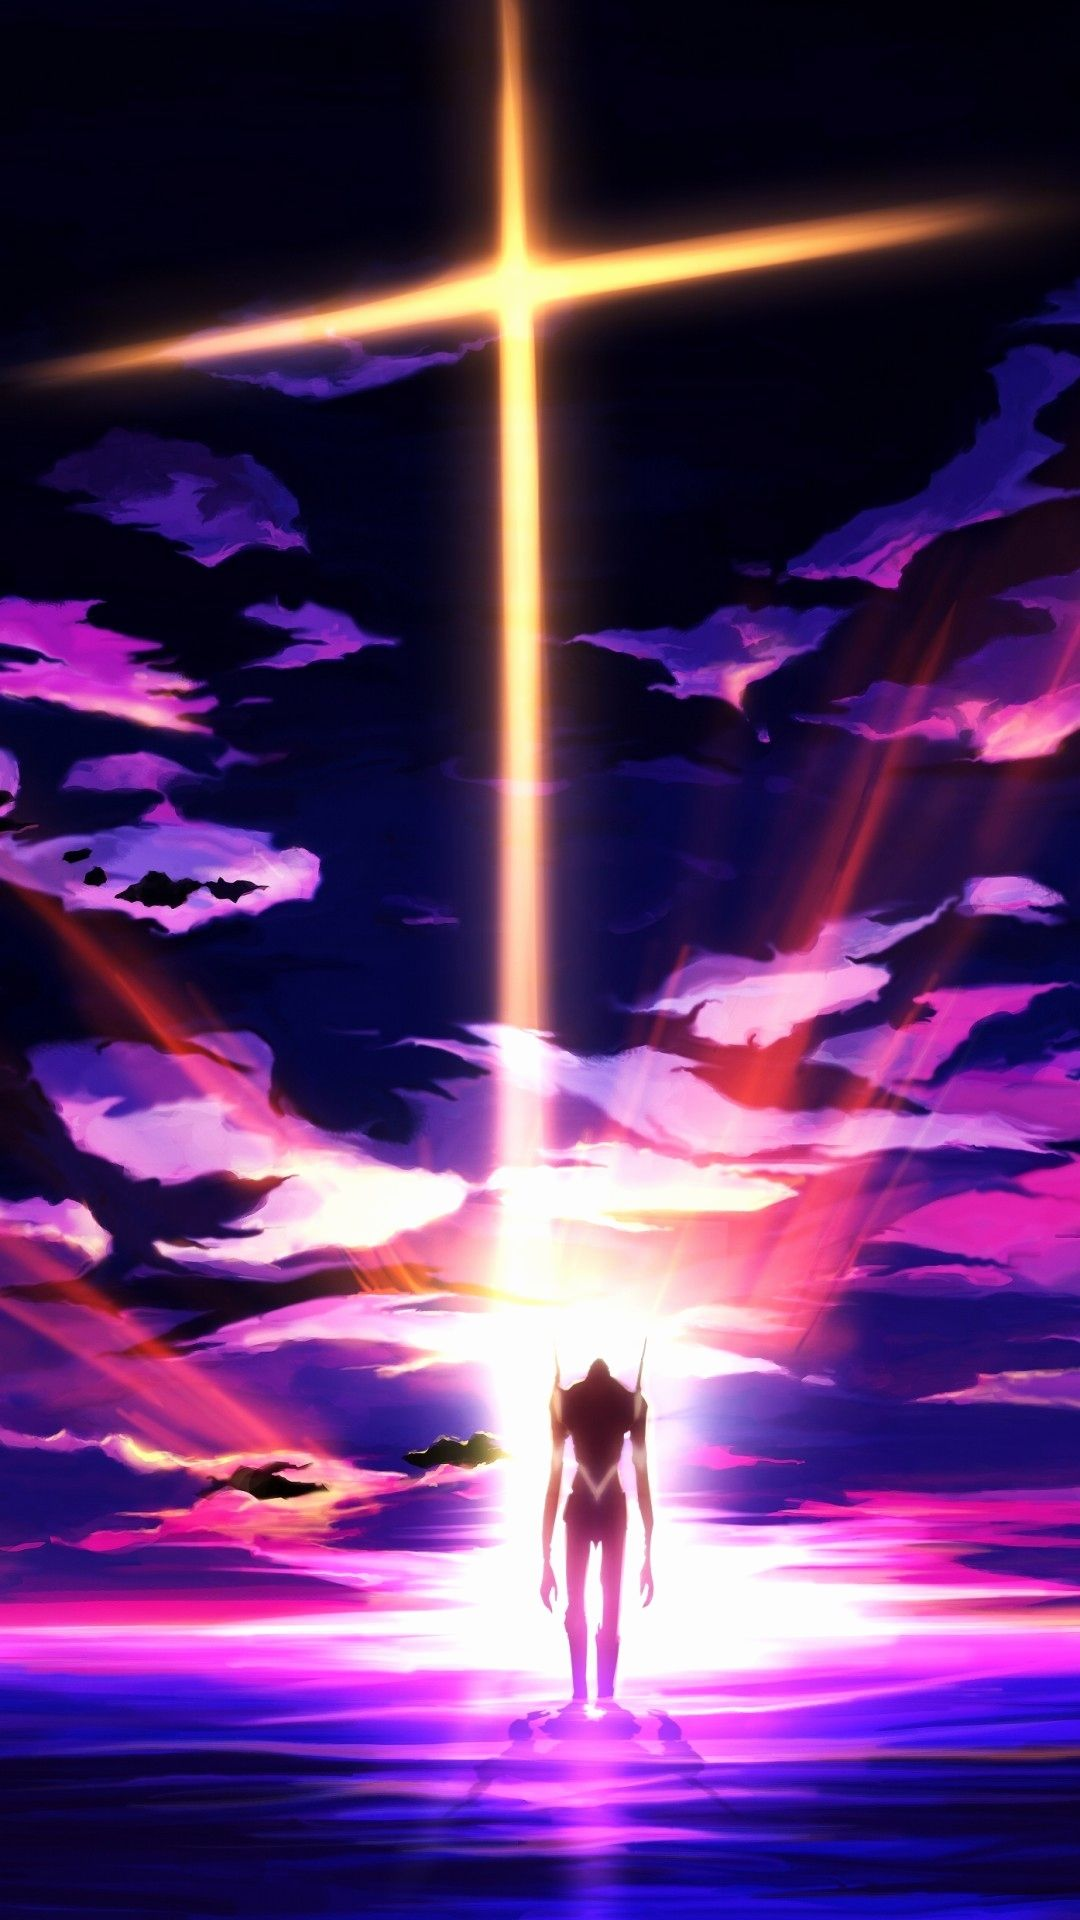 Neon evangelion image by Afzal on anime wallpaper in 2020